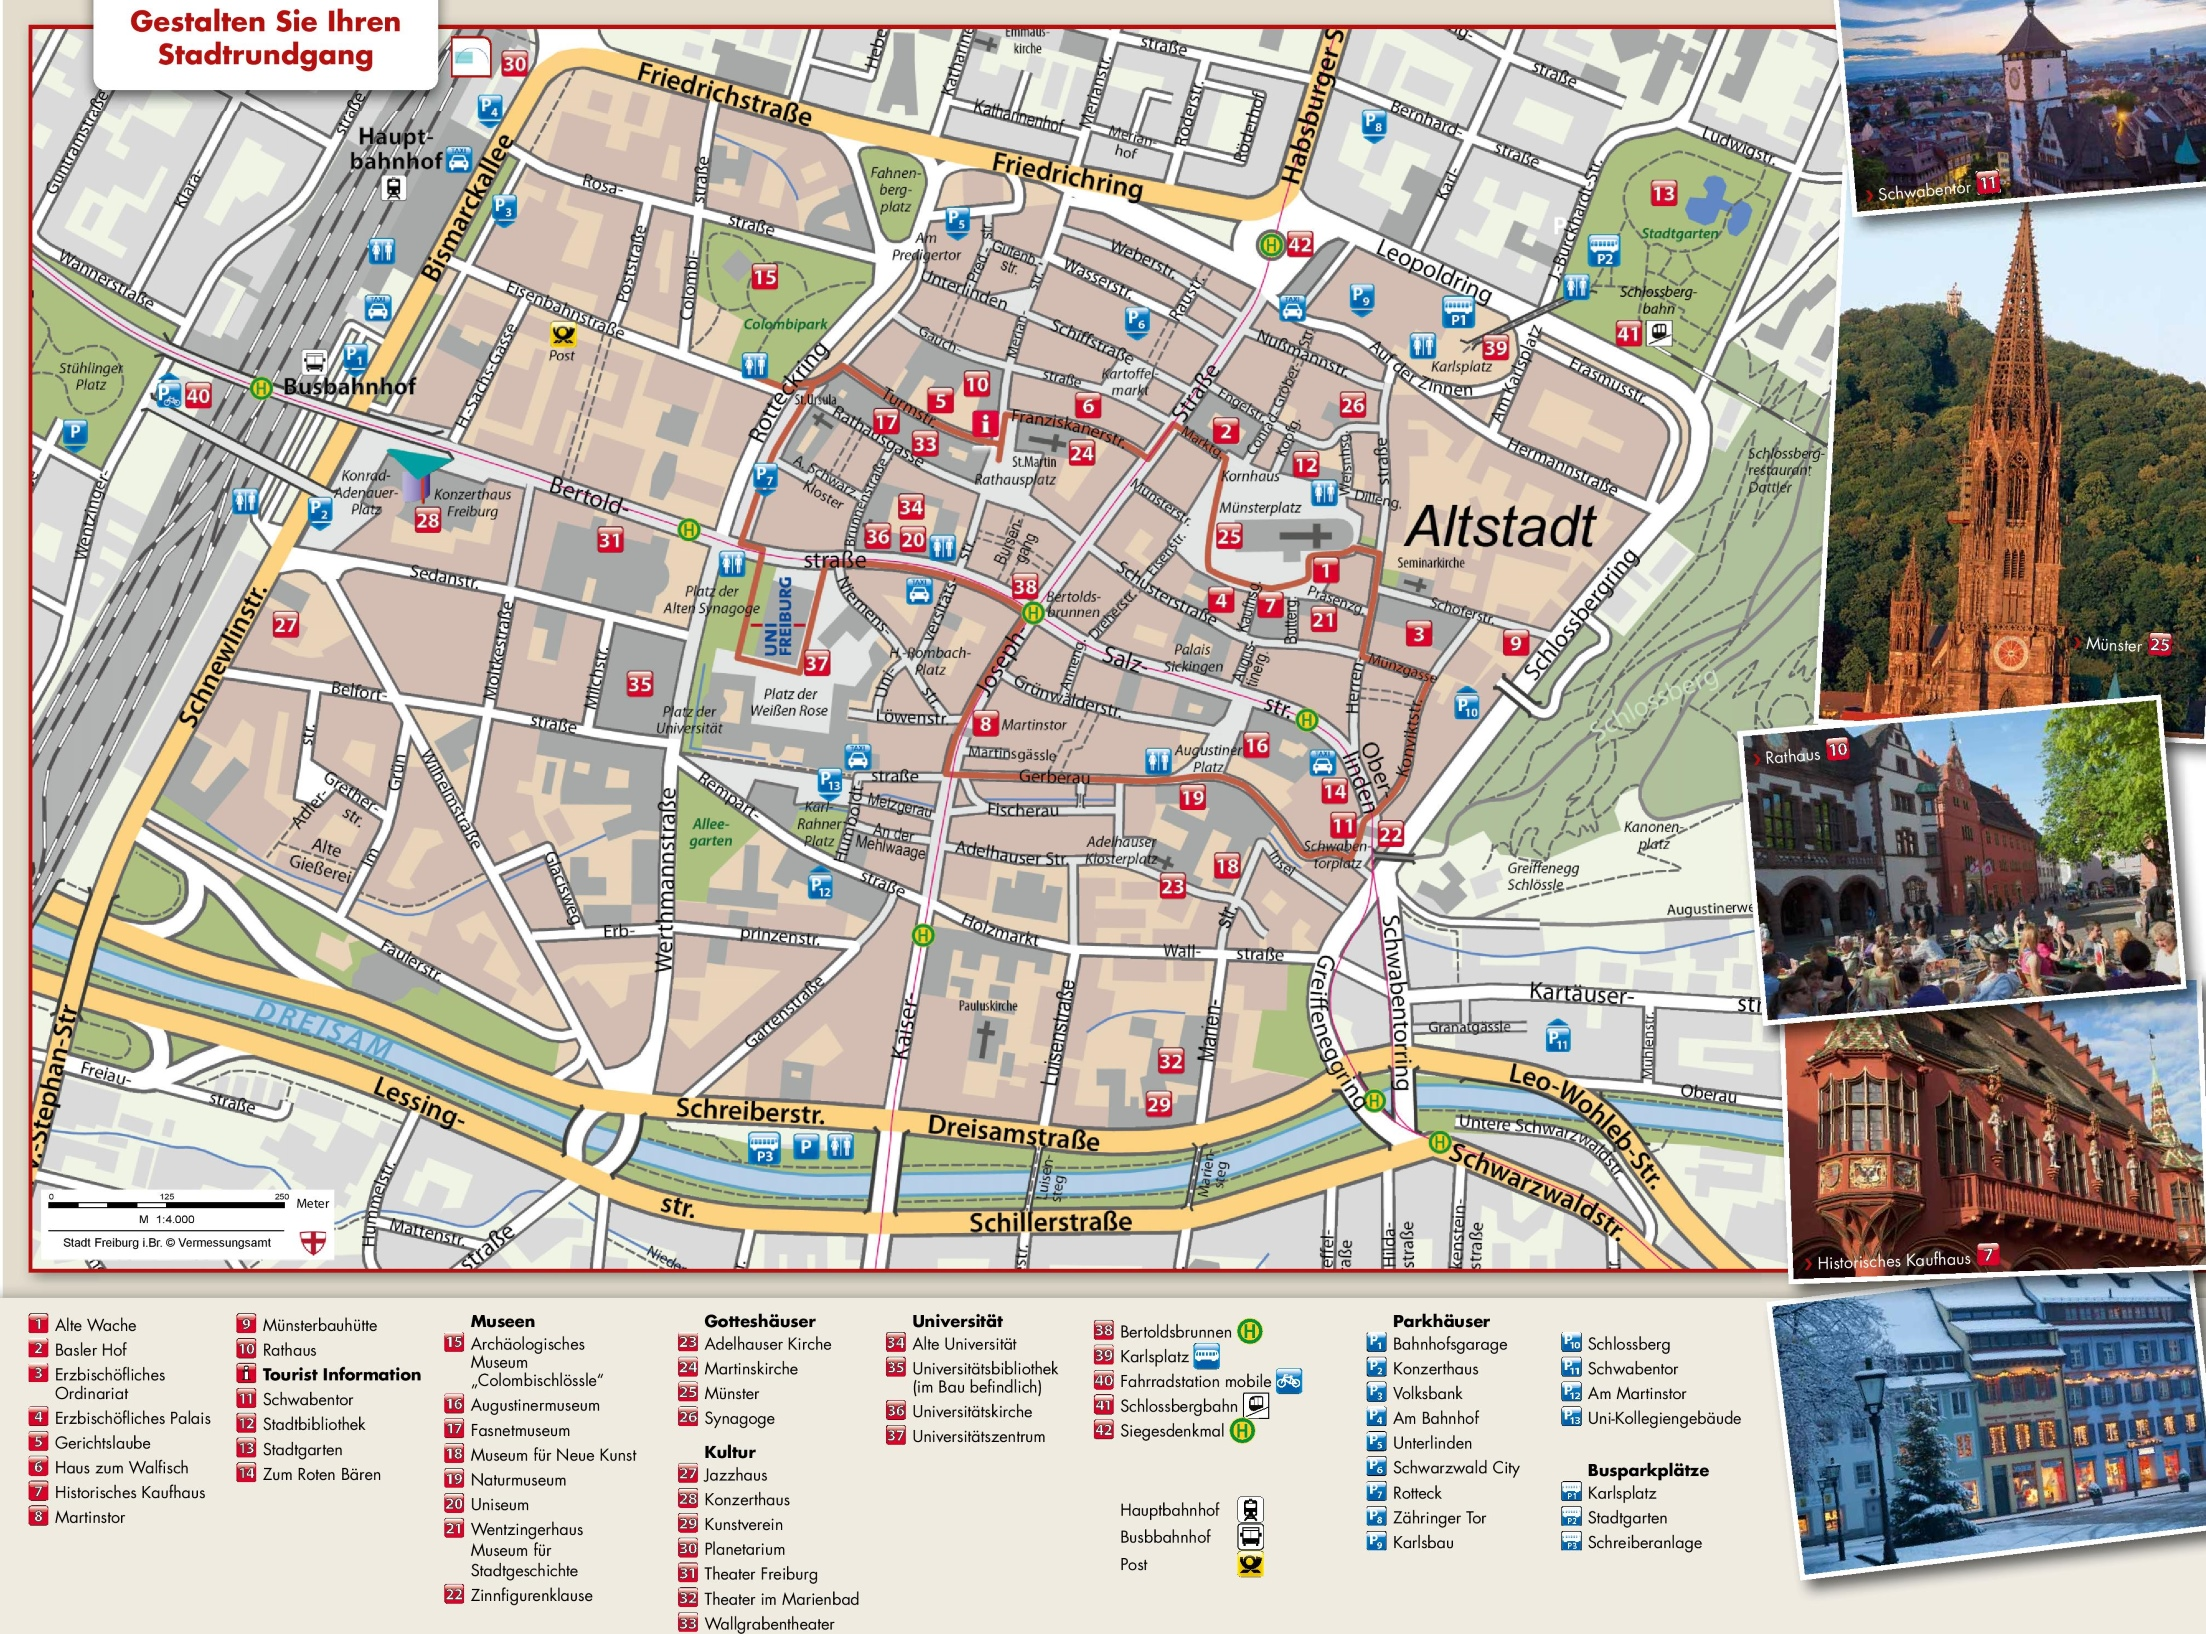 Freiburg tourist attractions map